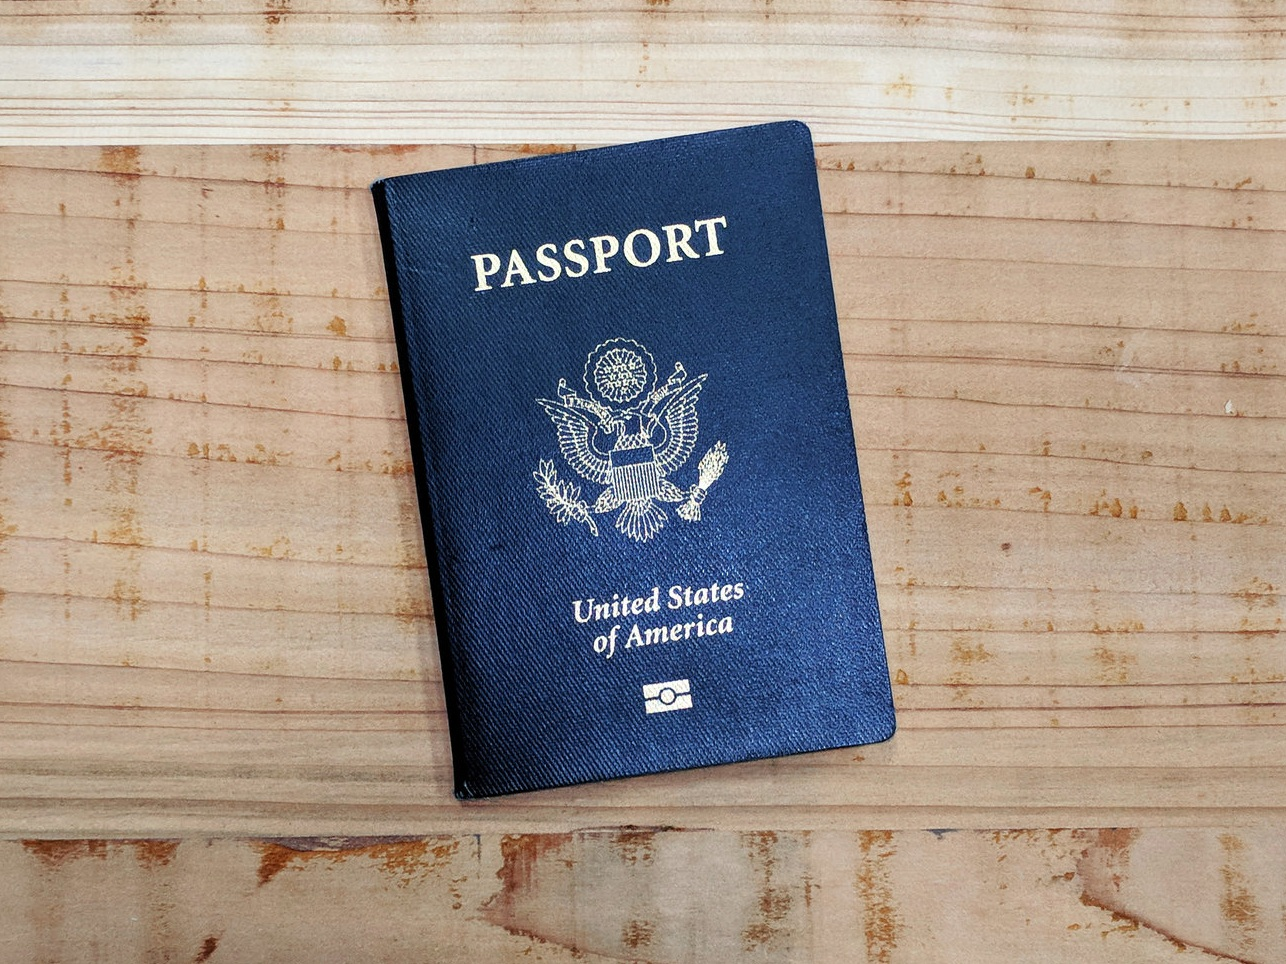 Should I renew my Green Card of apply for Naturalization? - The cost difference is only $185 - what is the right decision for you?